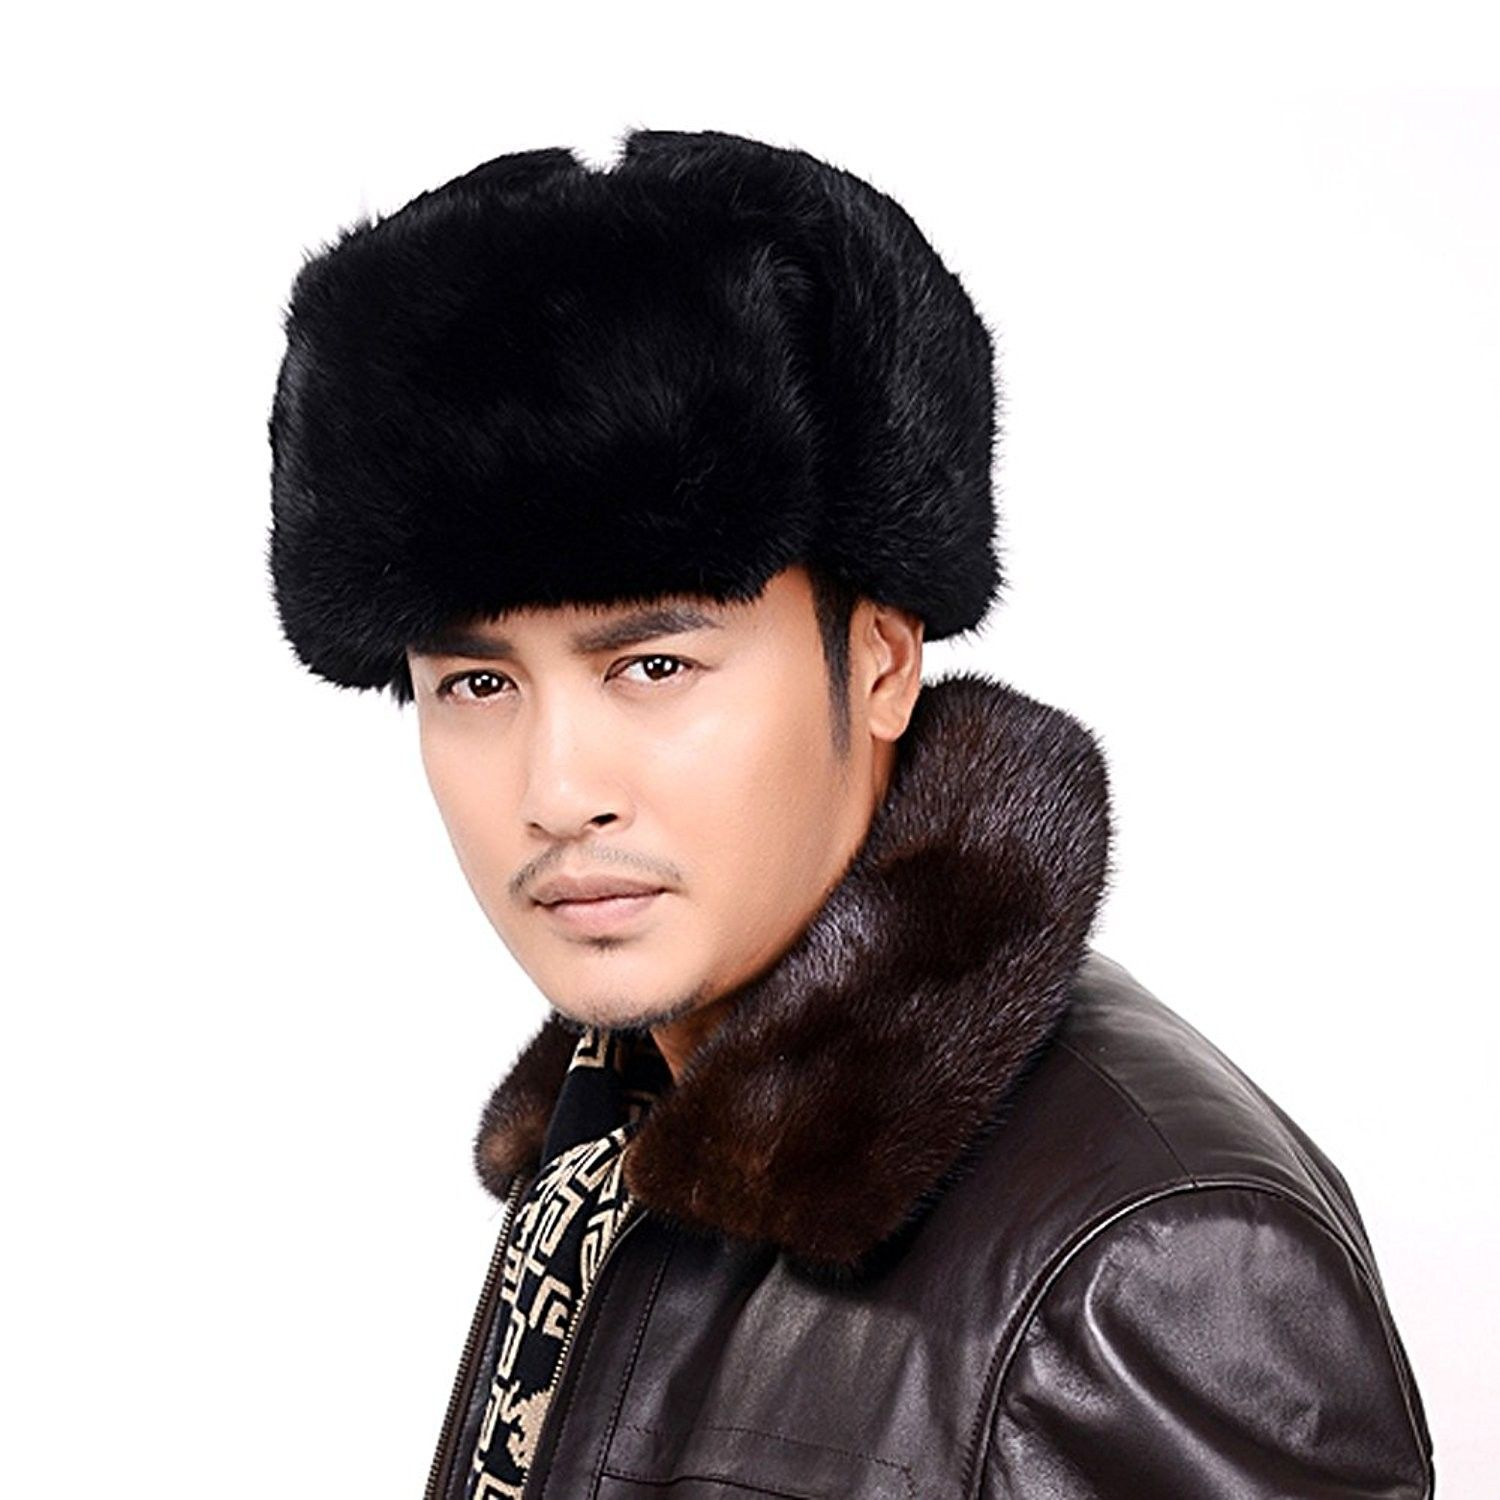 c58b40065f5 Men s Women s Natural Rabbit Full Fur Russian Soviet Ushanka Winter Trooper  Hat - Black - CS1857I7OYK - Hats   Caps